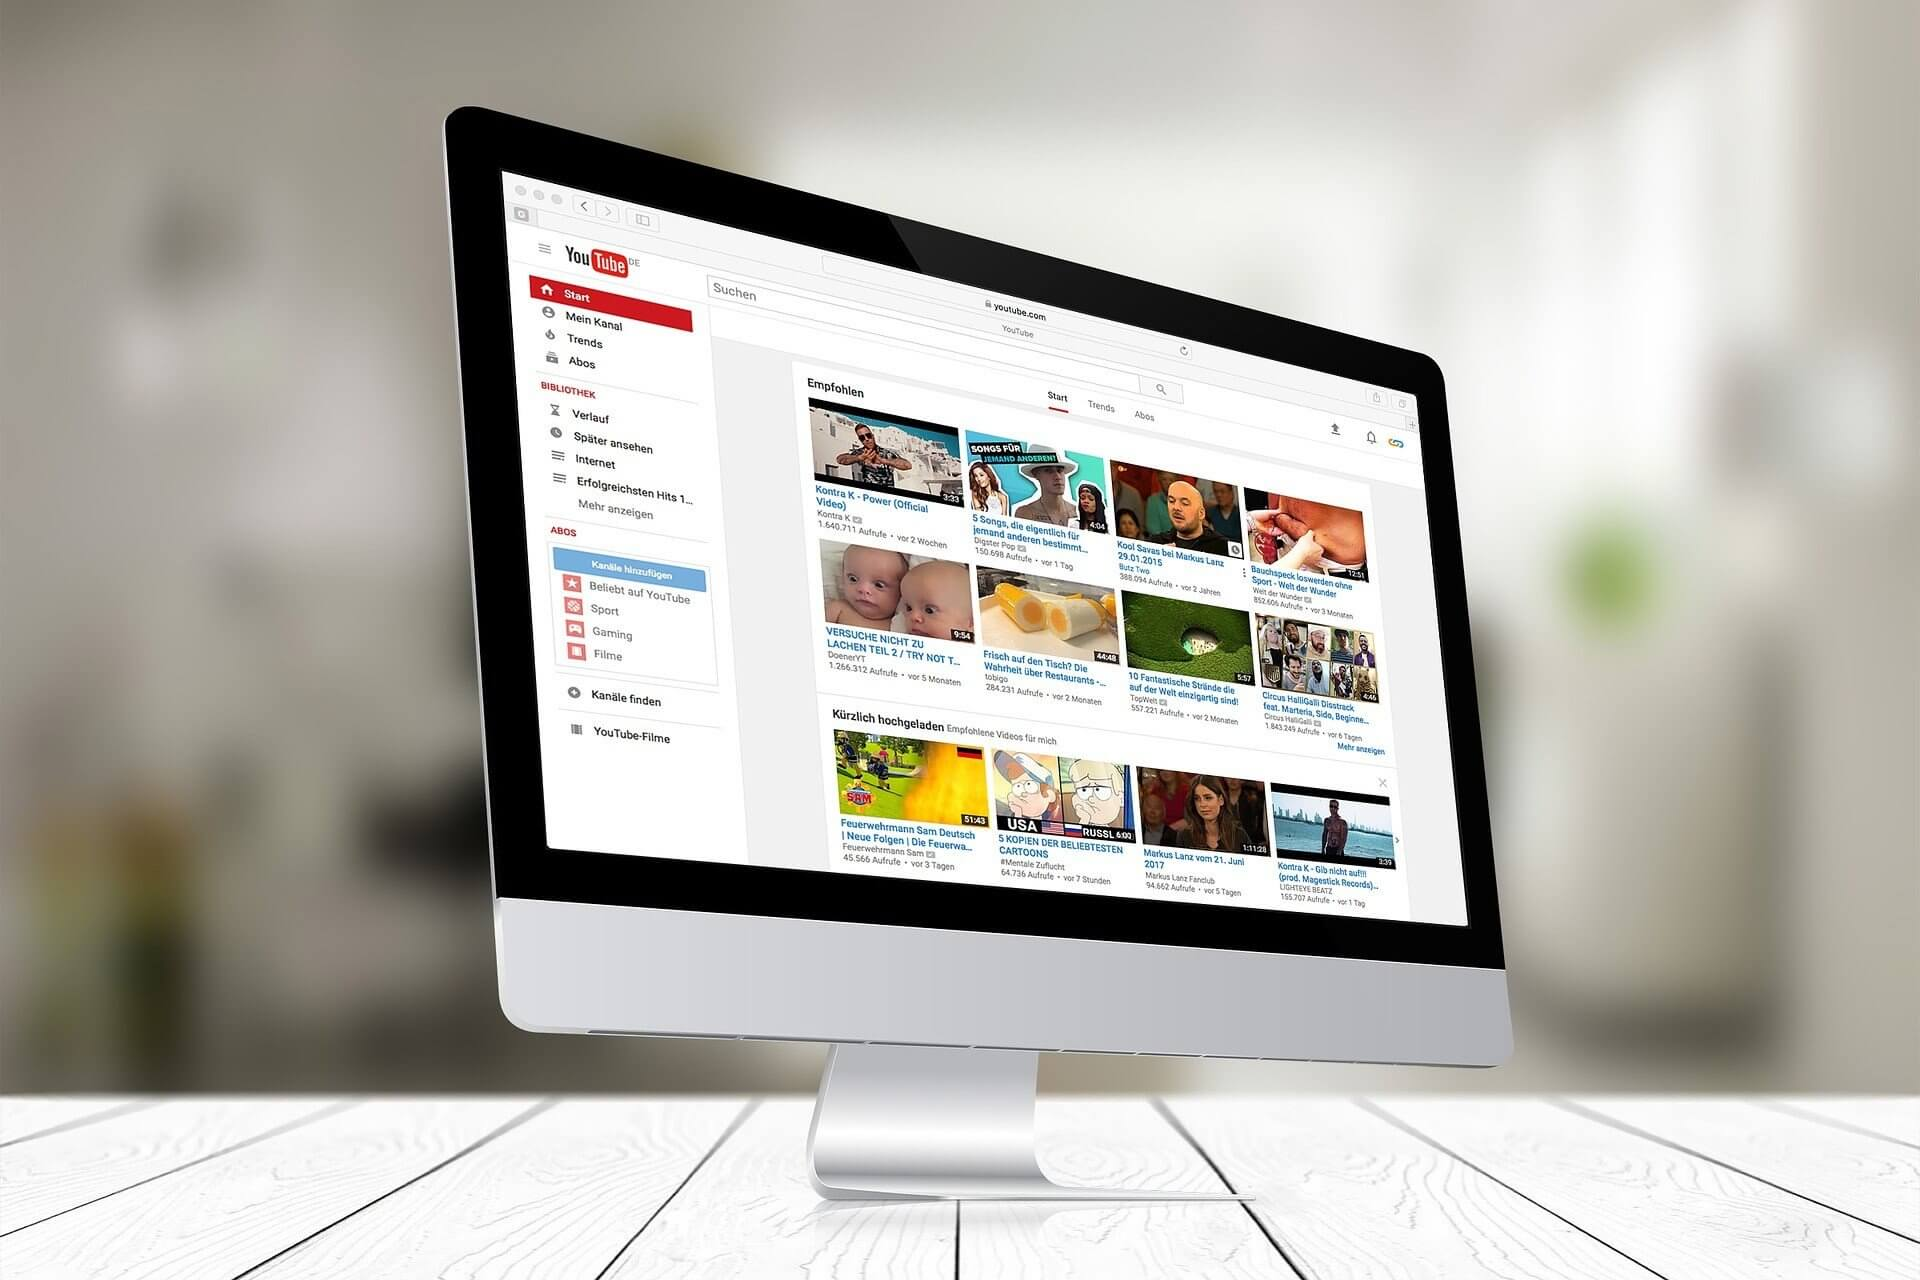 youtube open on computer screen